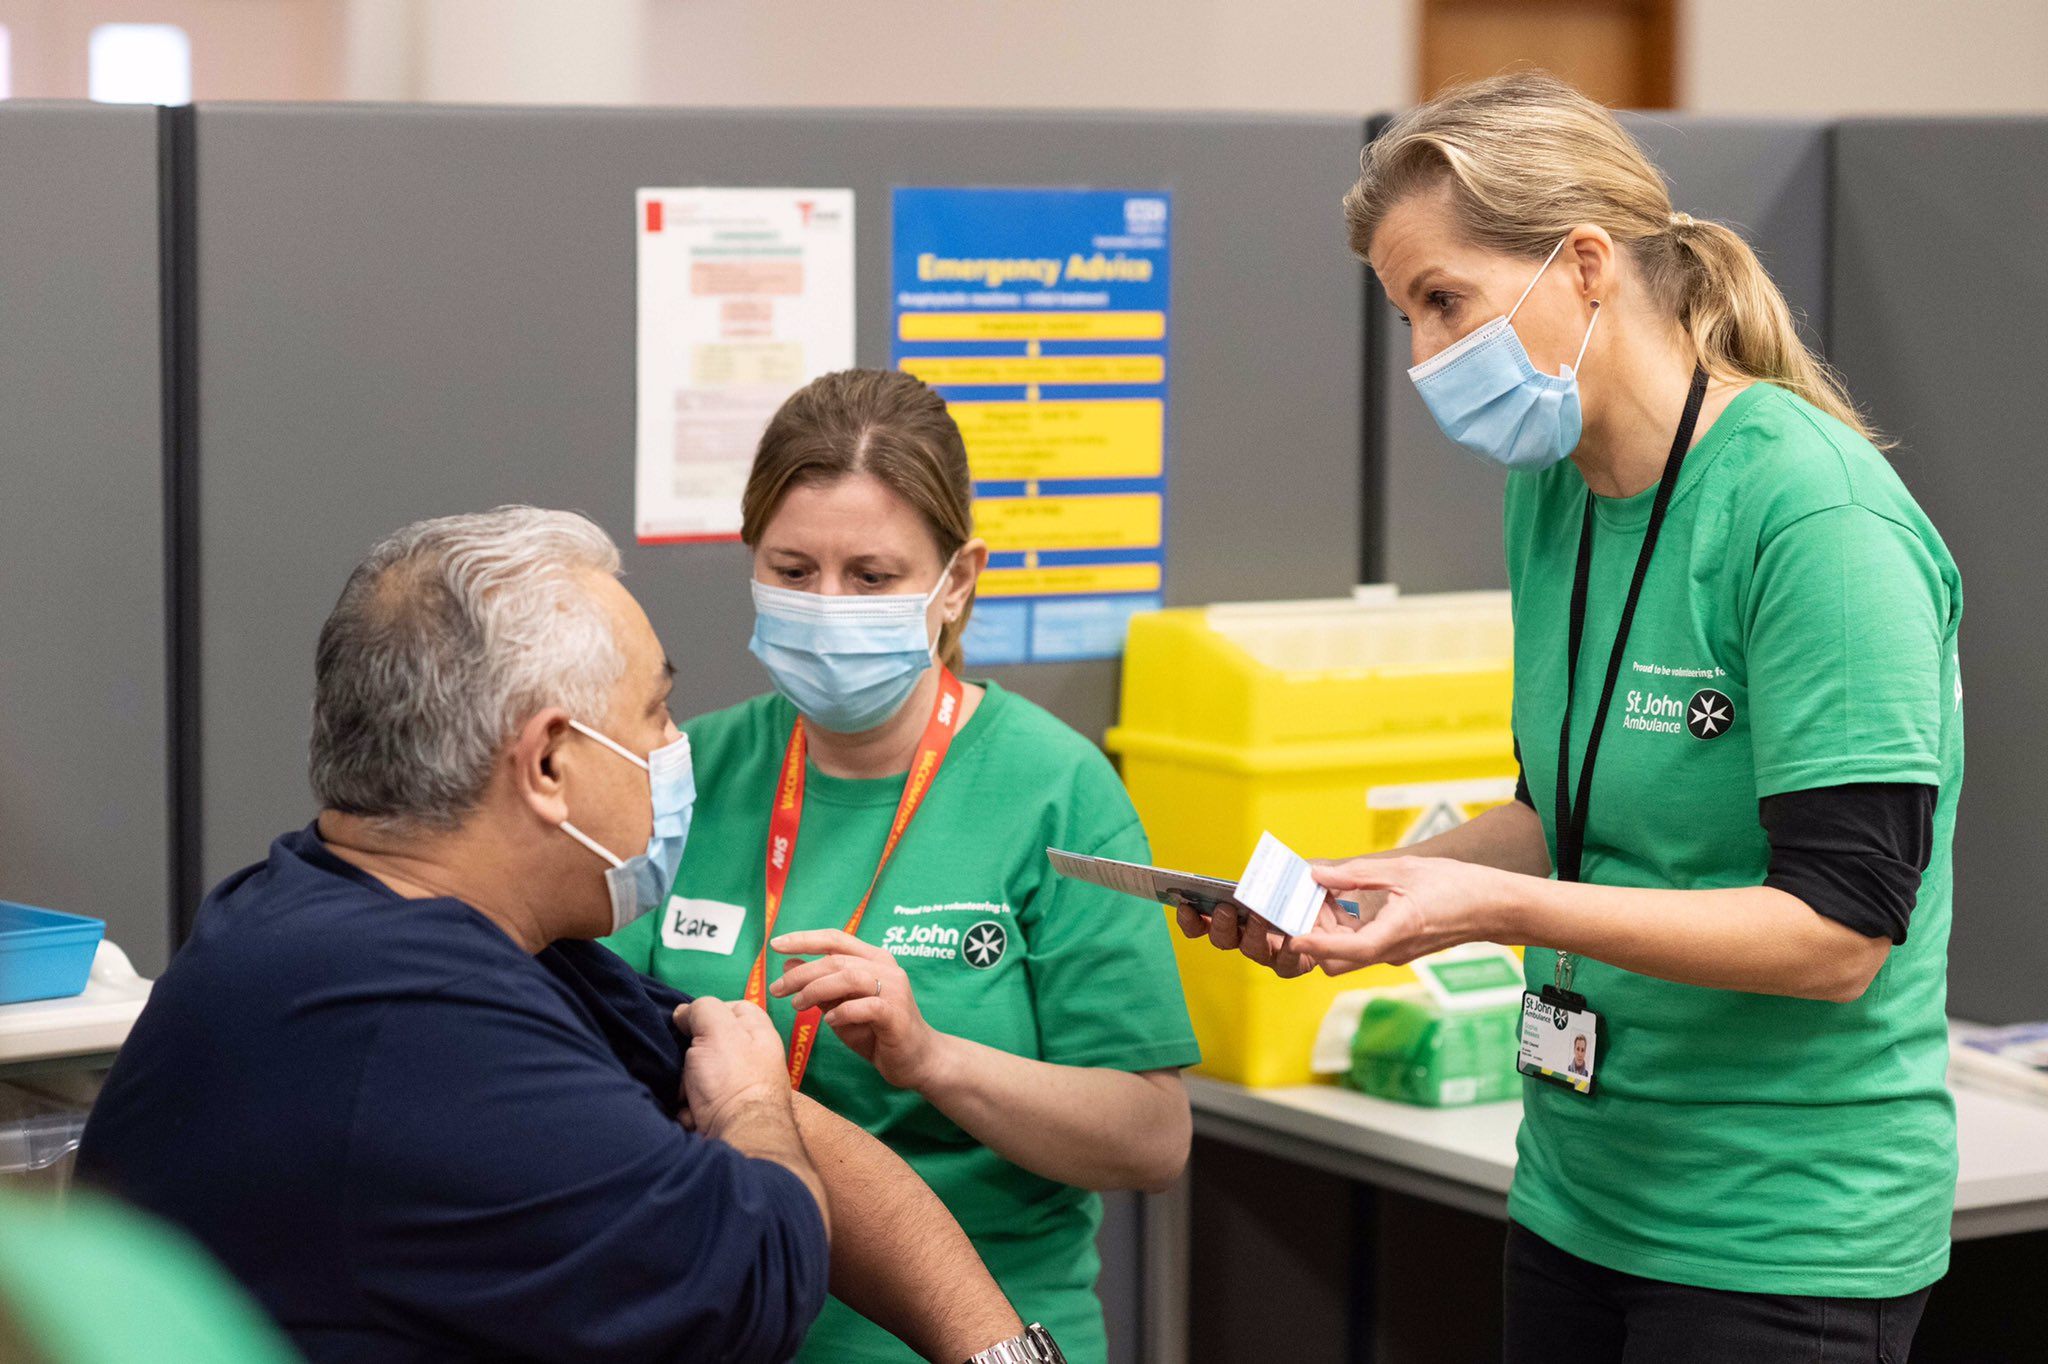 The Grand President of St John Ambulance and a care volunteer for the charity, The Countess of Wessex started volunteering at a vaccination centre during lockdown to assist the Covid-19 vaccine rollout across the country